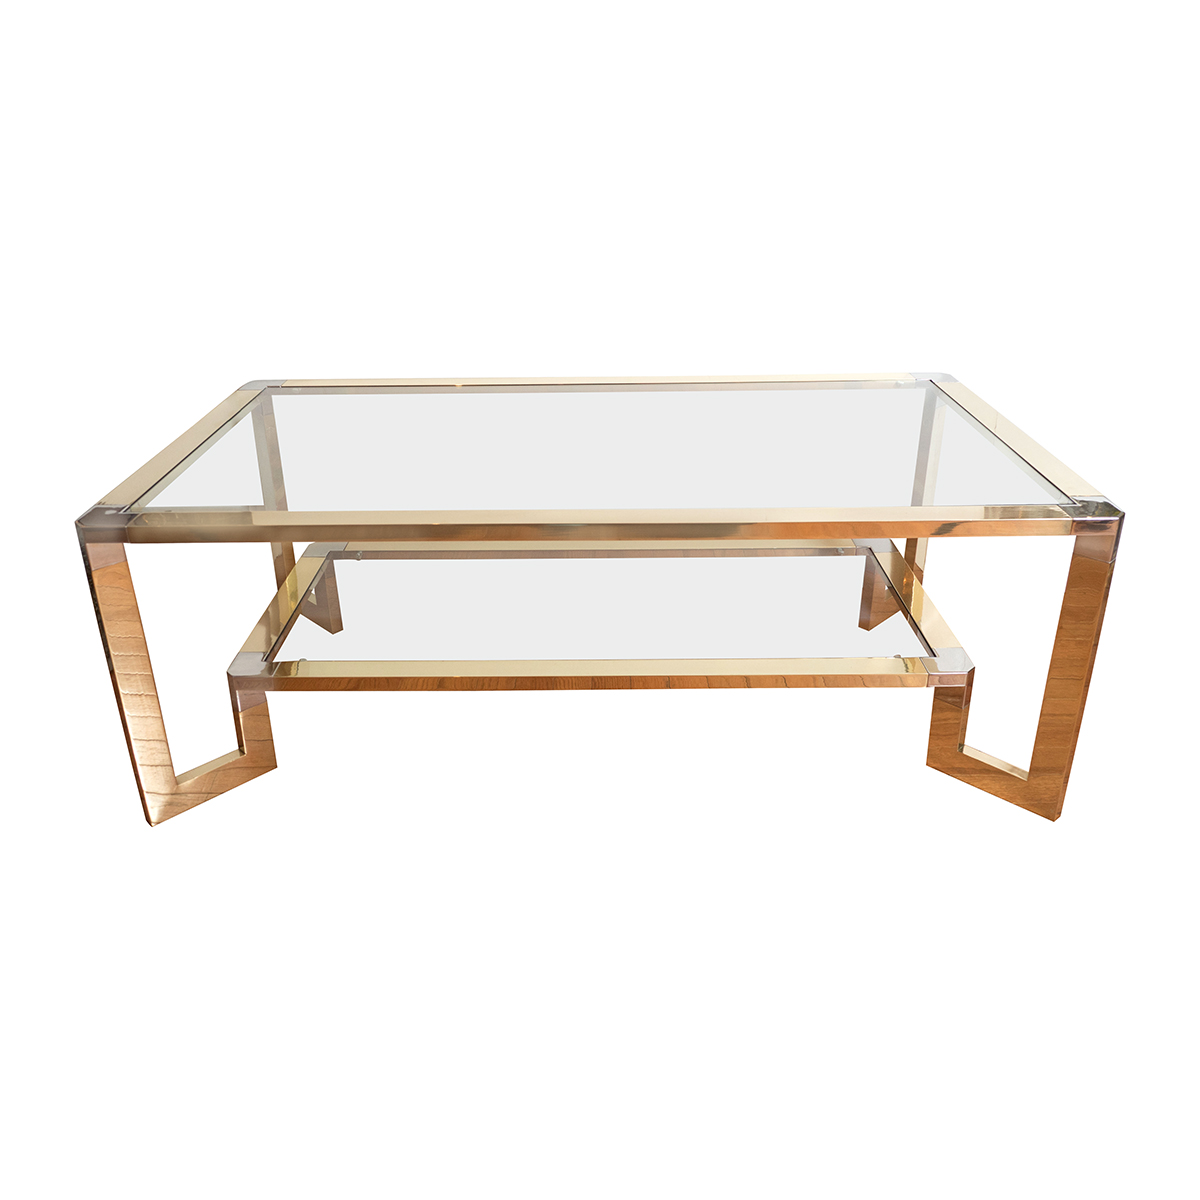 Two-tier Brass And Nickel Coffee Table